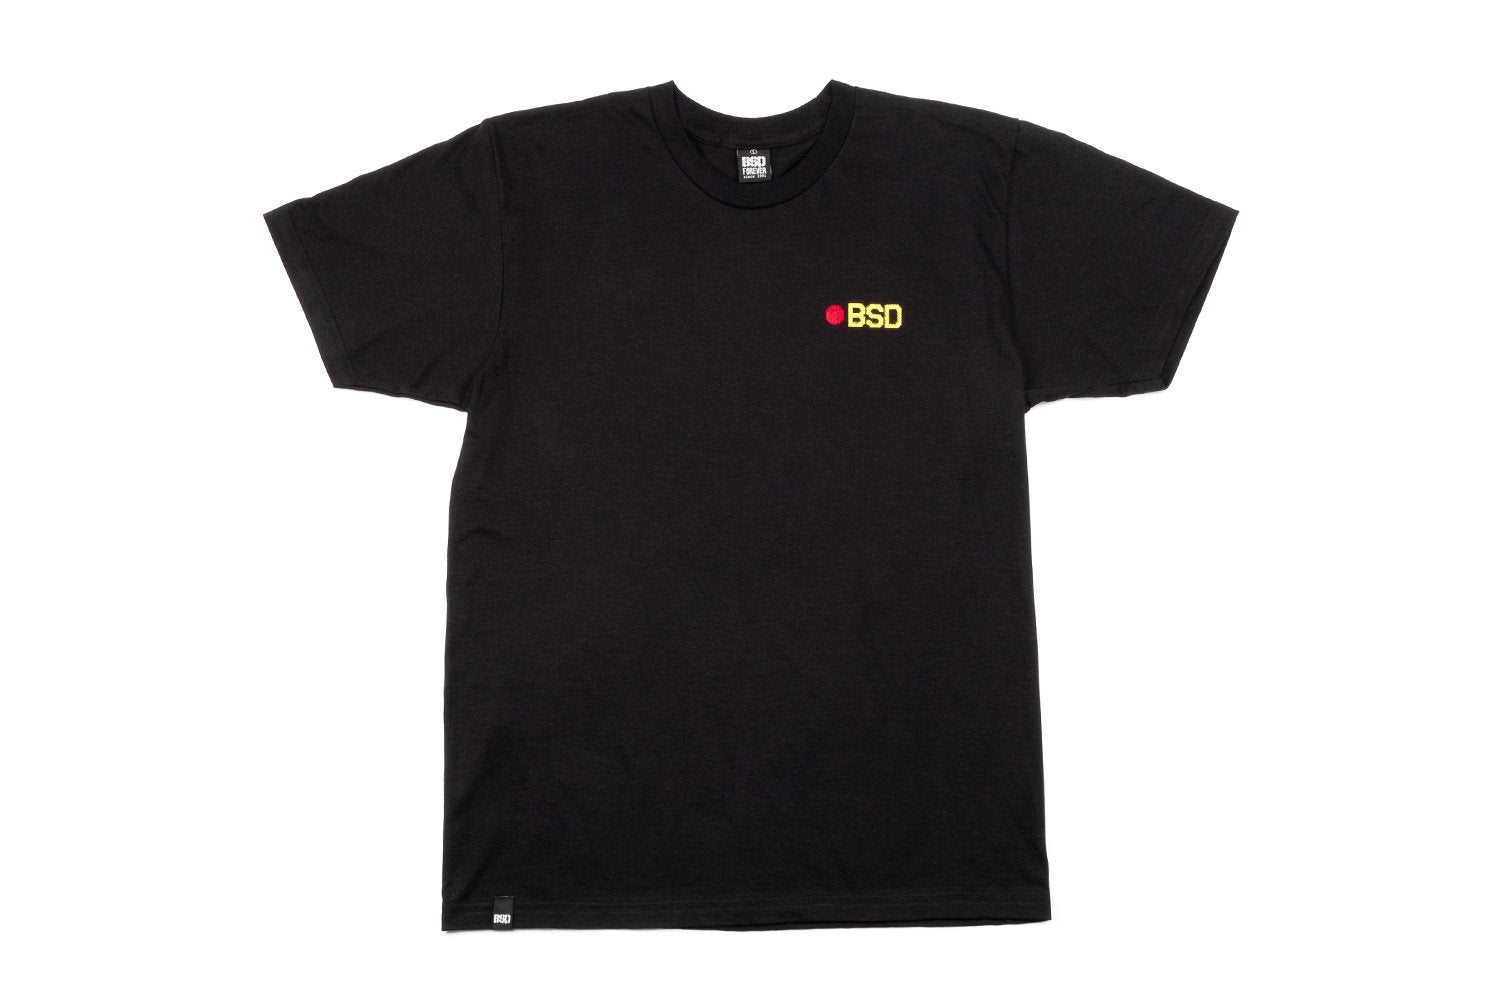 BSD Eject T-Shirt - Black - Large